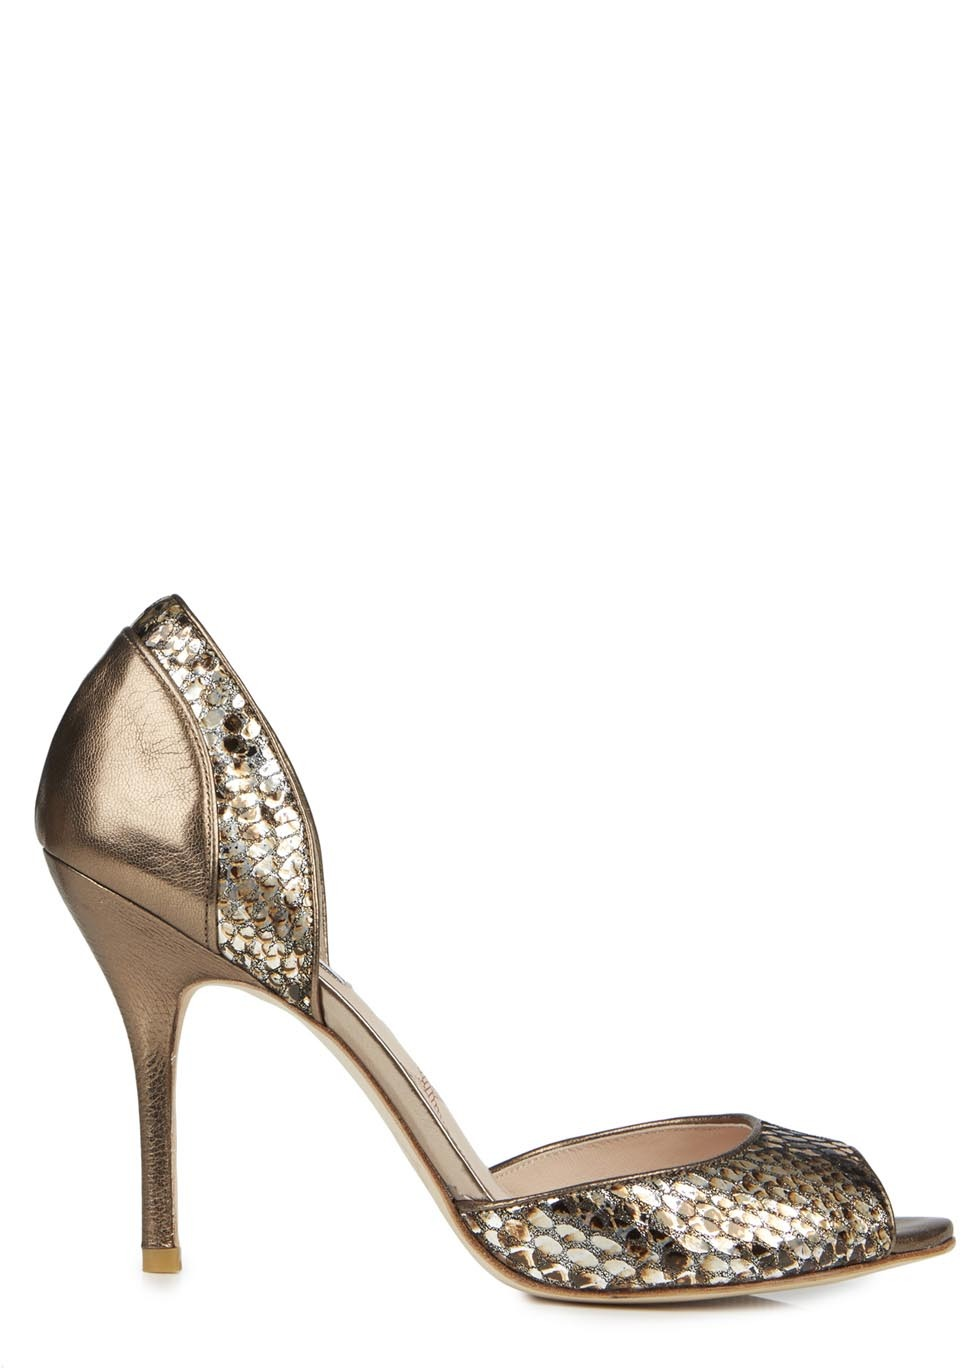 Zinnia Bronze Snake Effect Pumps - predominant colour: bronze; occasions: evening, occasion; material: leather; heel height: high; heel: stiletto; toe: open toe/peeptoe; style: courts; finish: metallic; pattern: animal print; trends: shimmery metallics; season: s/s 2014